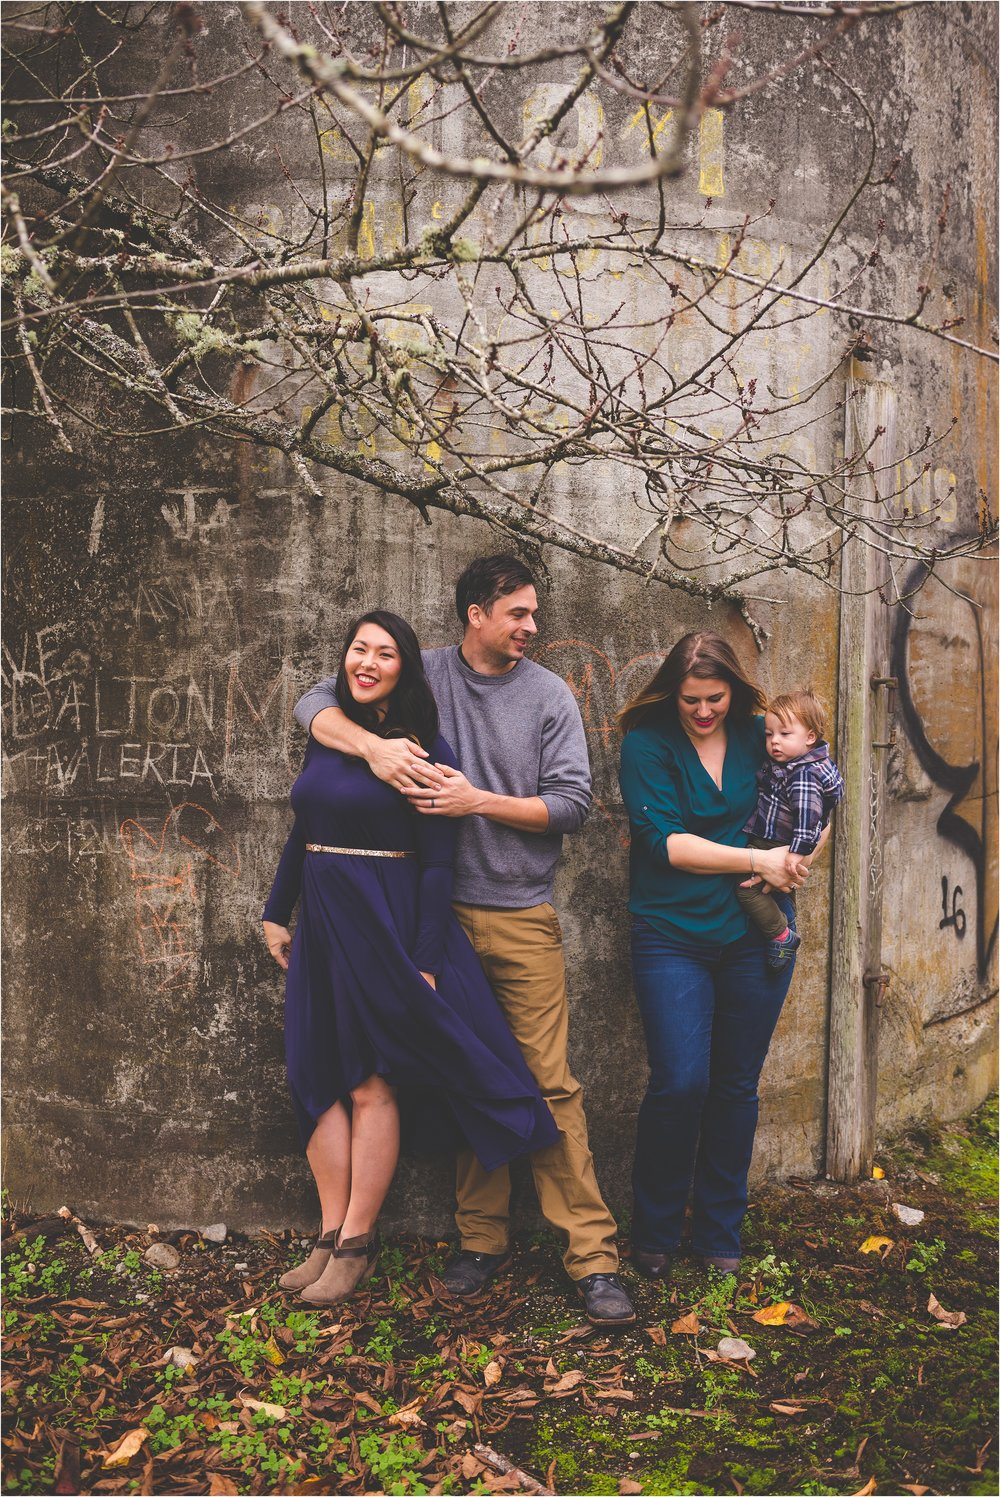 fort-steilacoom-park-family-session-jannicka-mayte-pacific-northwest-lifestyle-photographer_0022.jpg